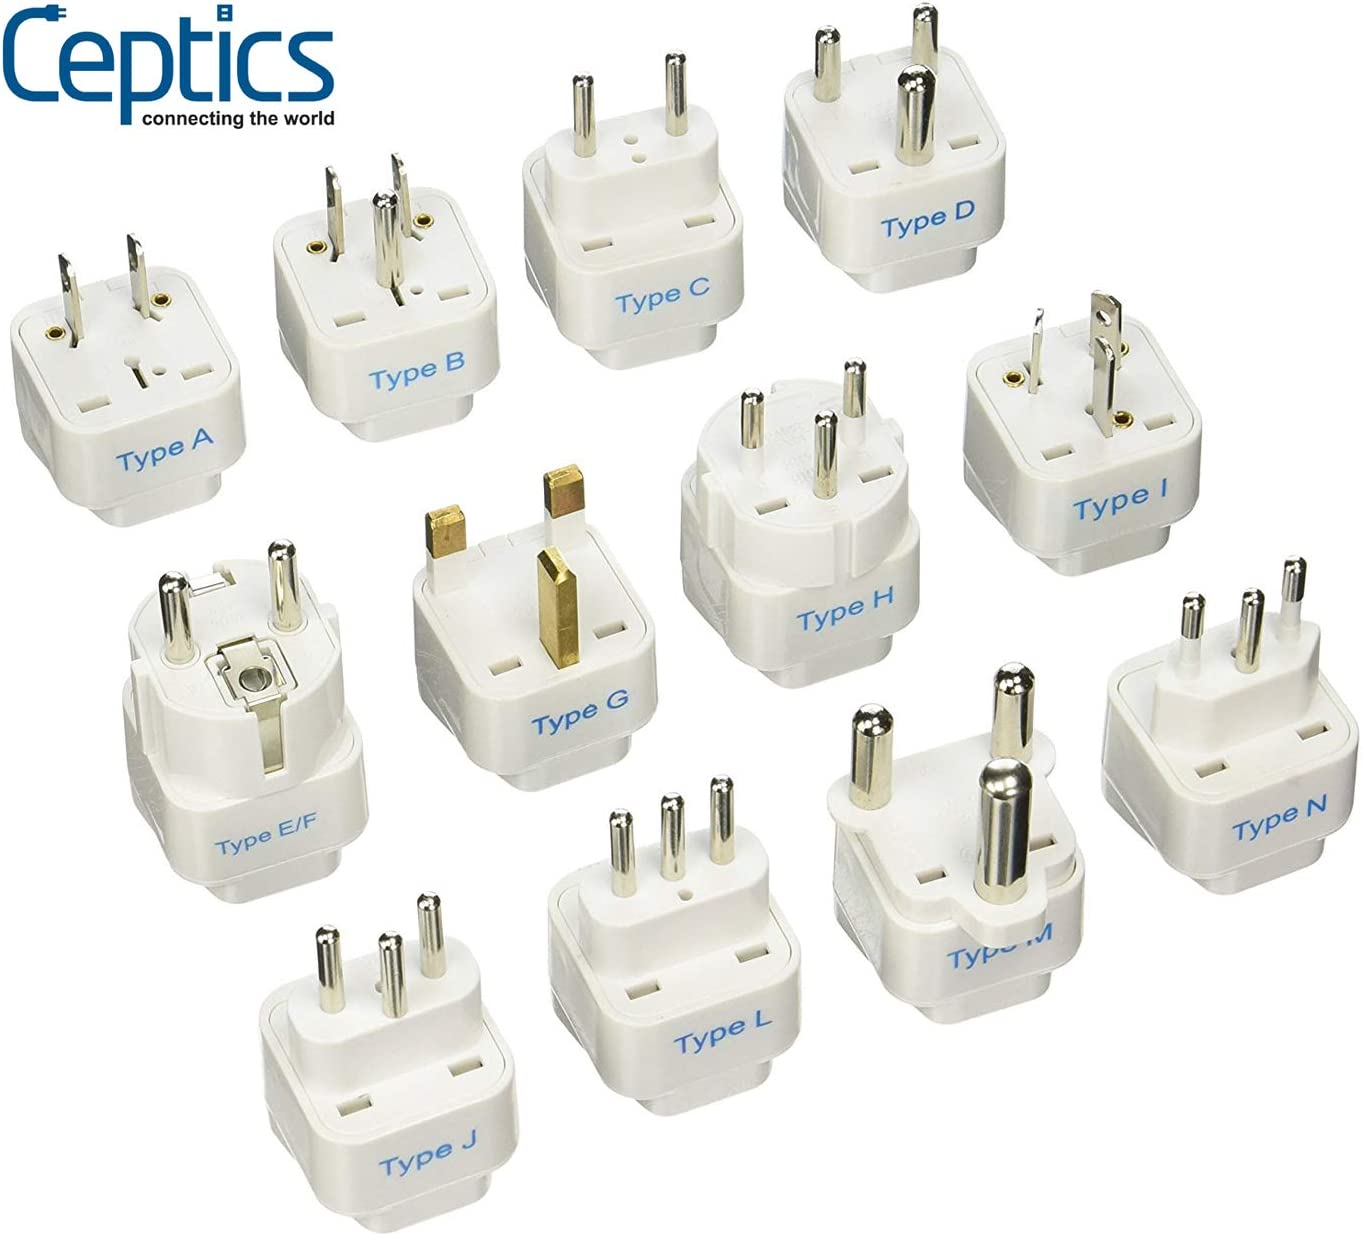 Ceptics 12Pcs International Travel Worldwide Grounded Universal Plug Adapter Set - Charge Your Devices from Anywhere in The World